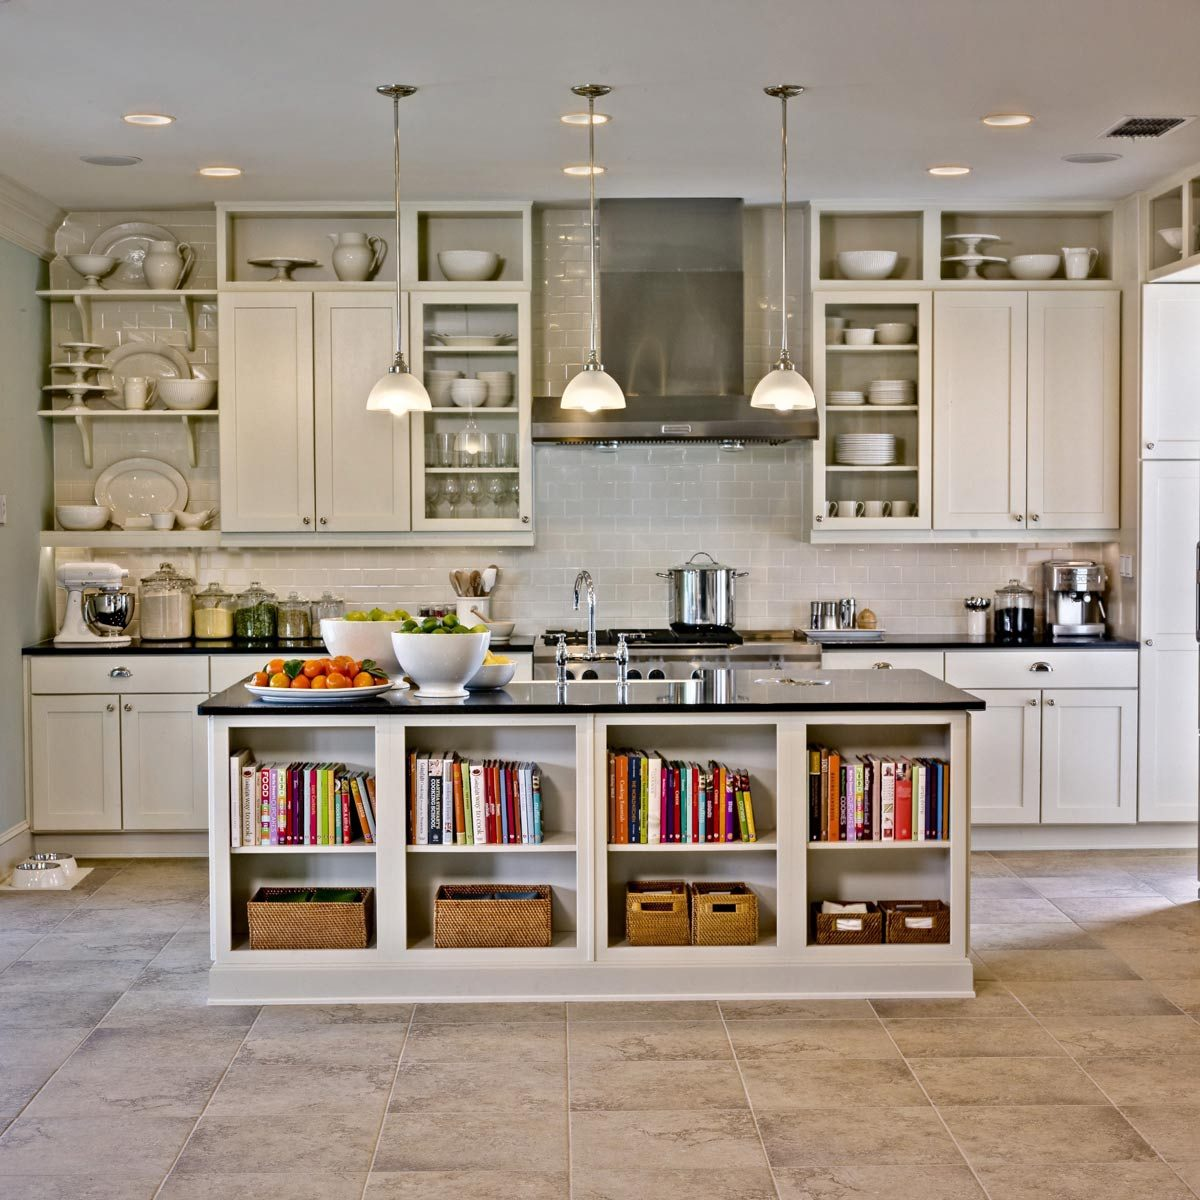 Kitchen Island Design Template The 12 Best Diy Kitchen Islands The Family Handyman